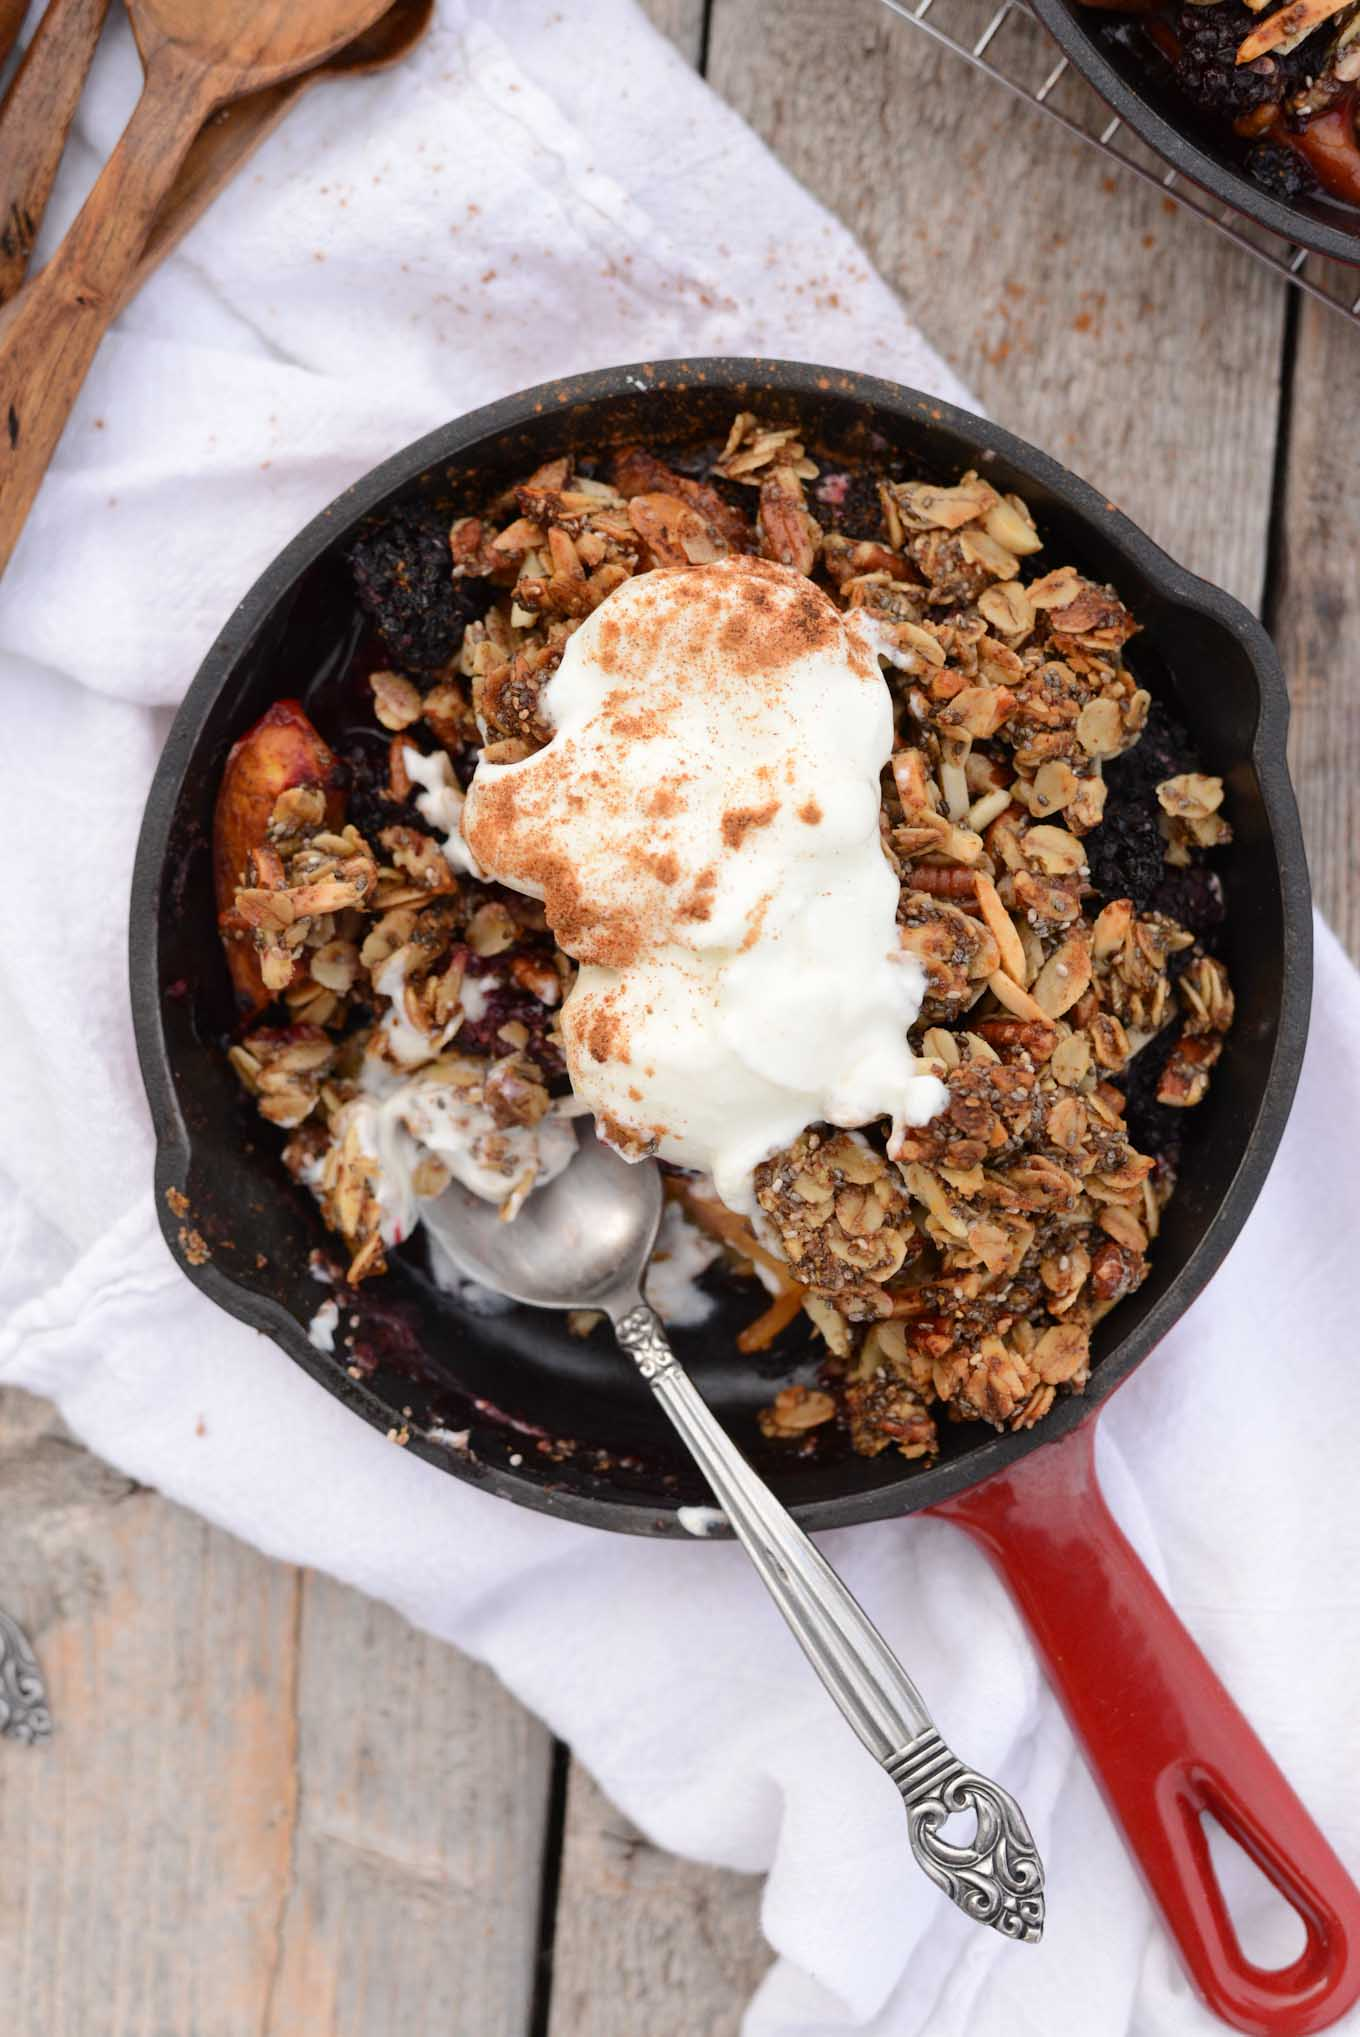 Fresh juicy nectarines with blackberries in this spiced skillet crisp for two.